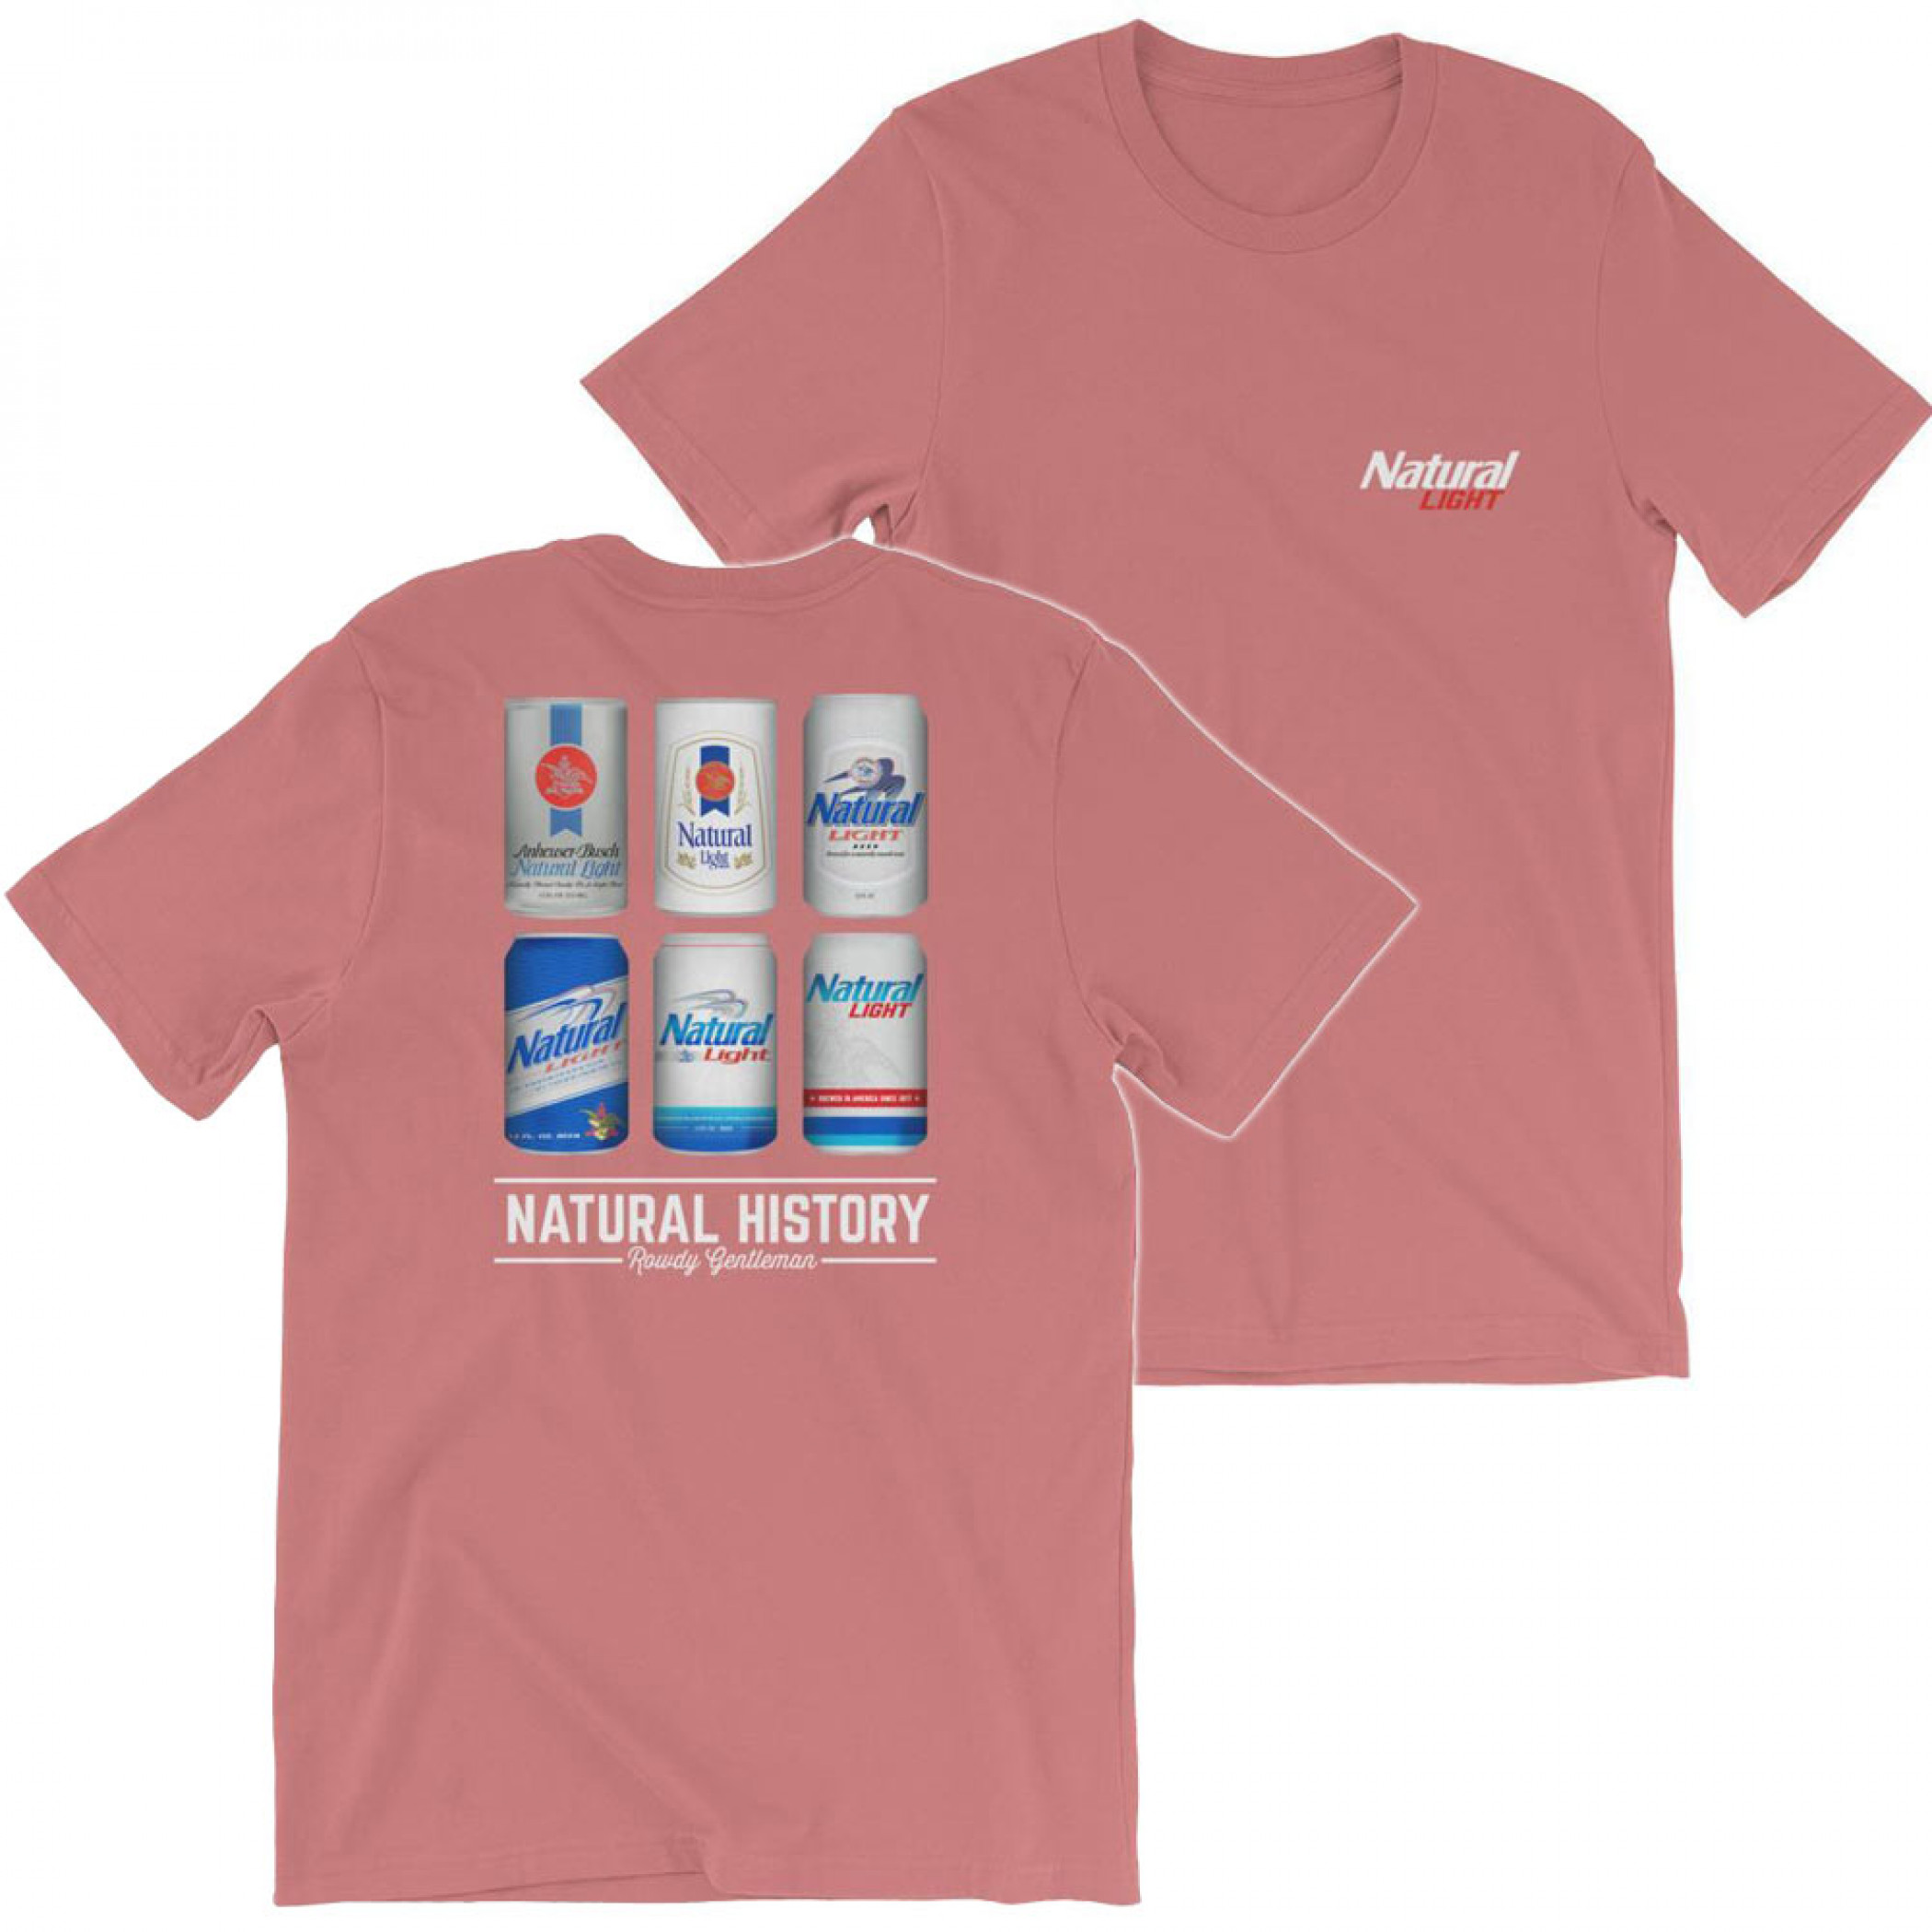 Natural Light Beer History Red Clay Men's Cotton T-Shirt